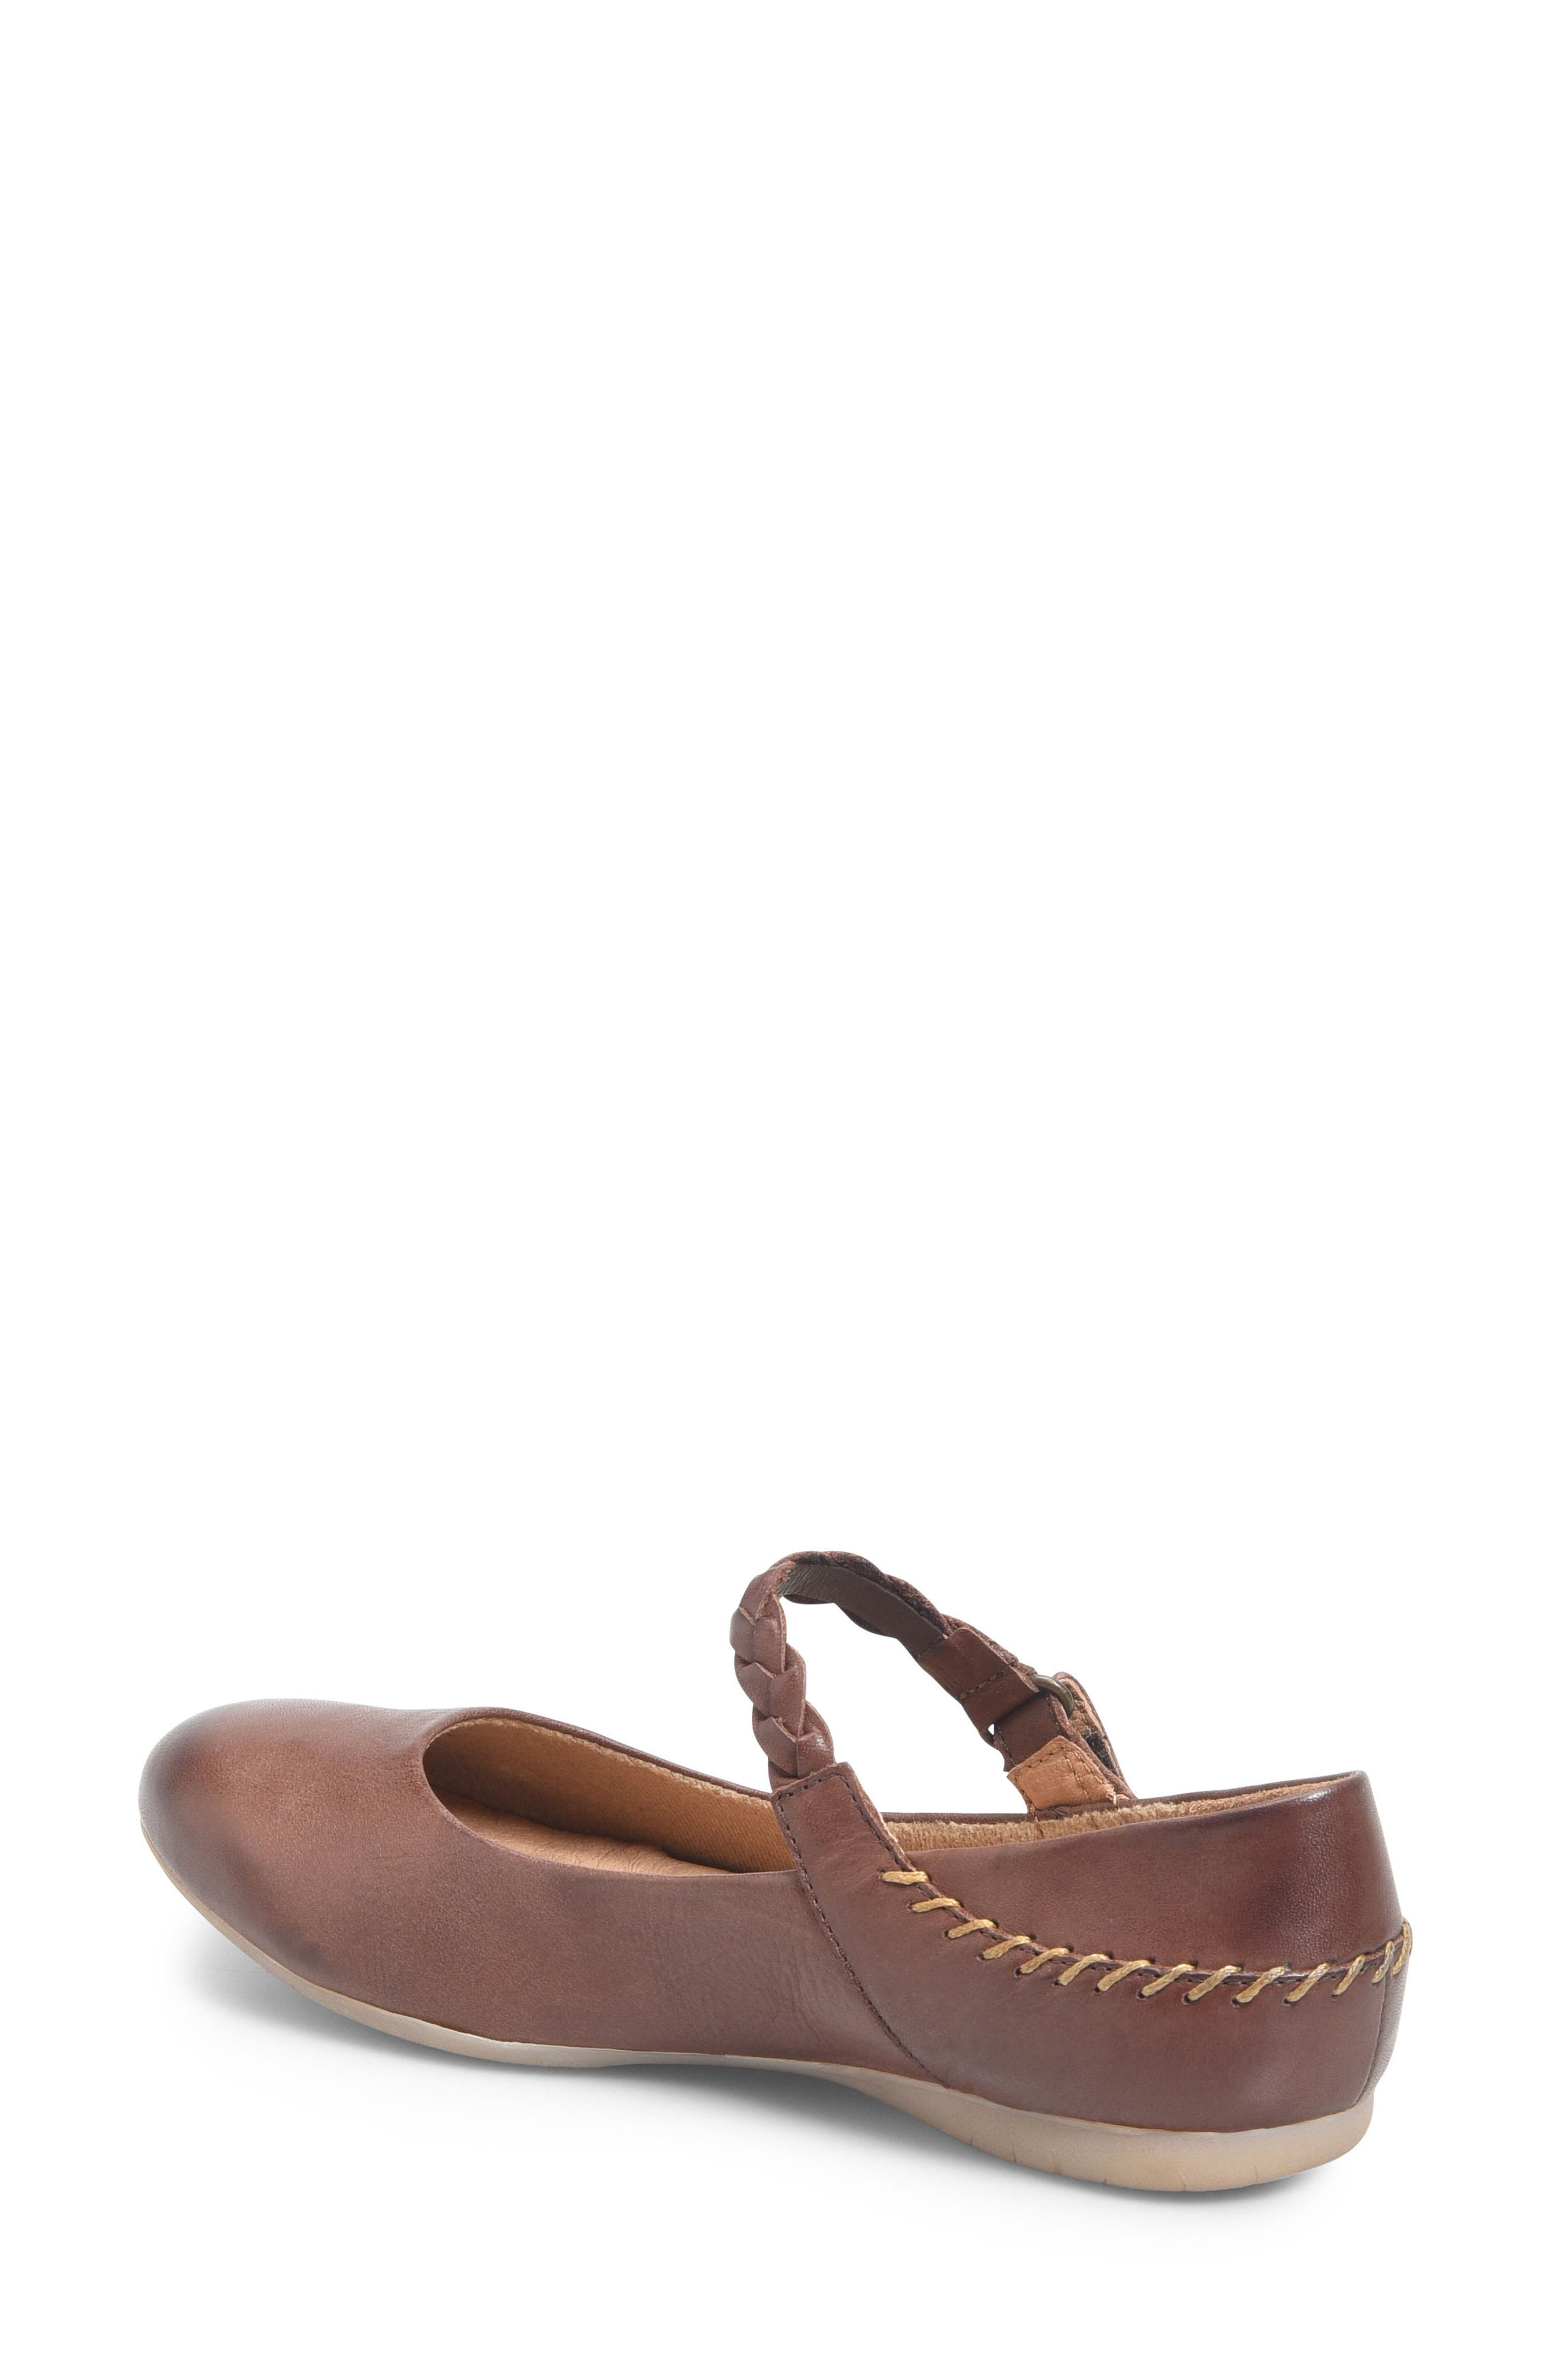 Mary Jane Flat,                             Alternate thumbnail 2, color,                             Brown Leather